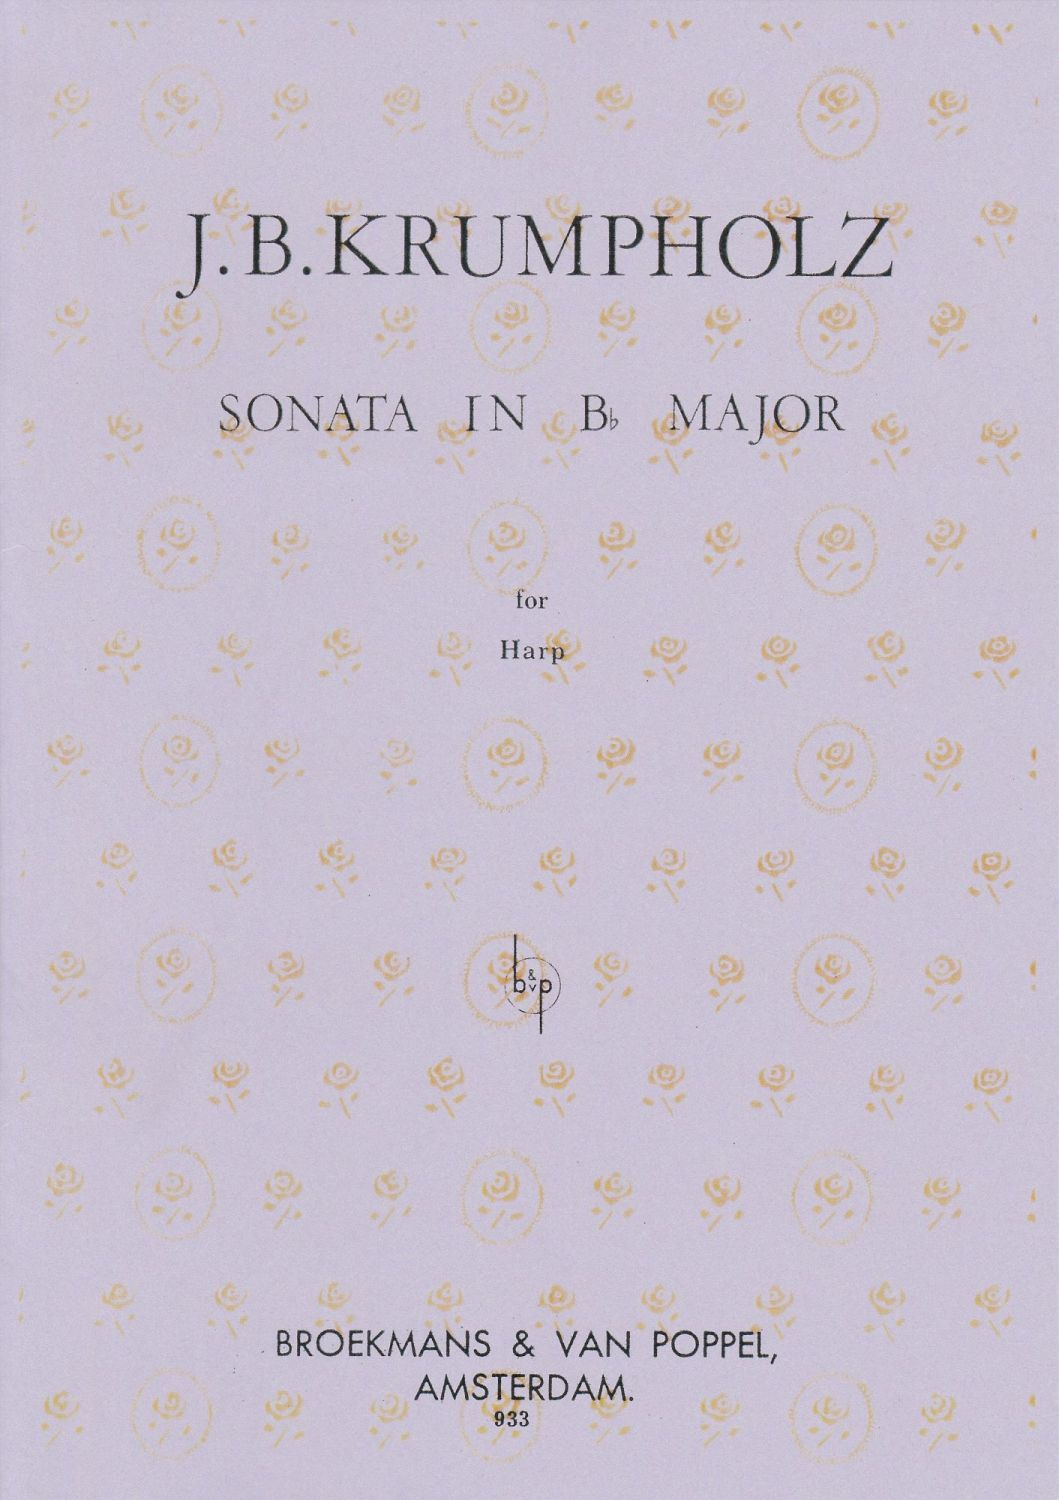 Sonata in Bflat Major - Krumpholtz